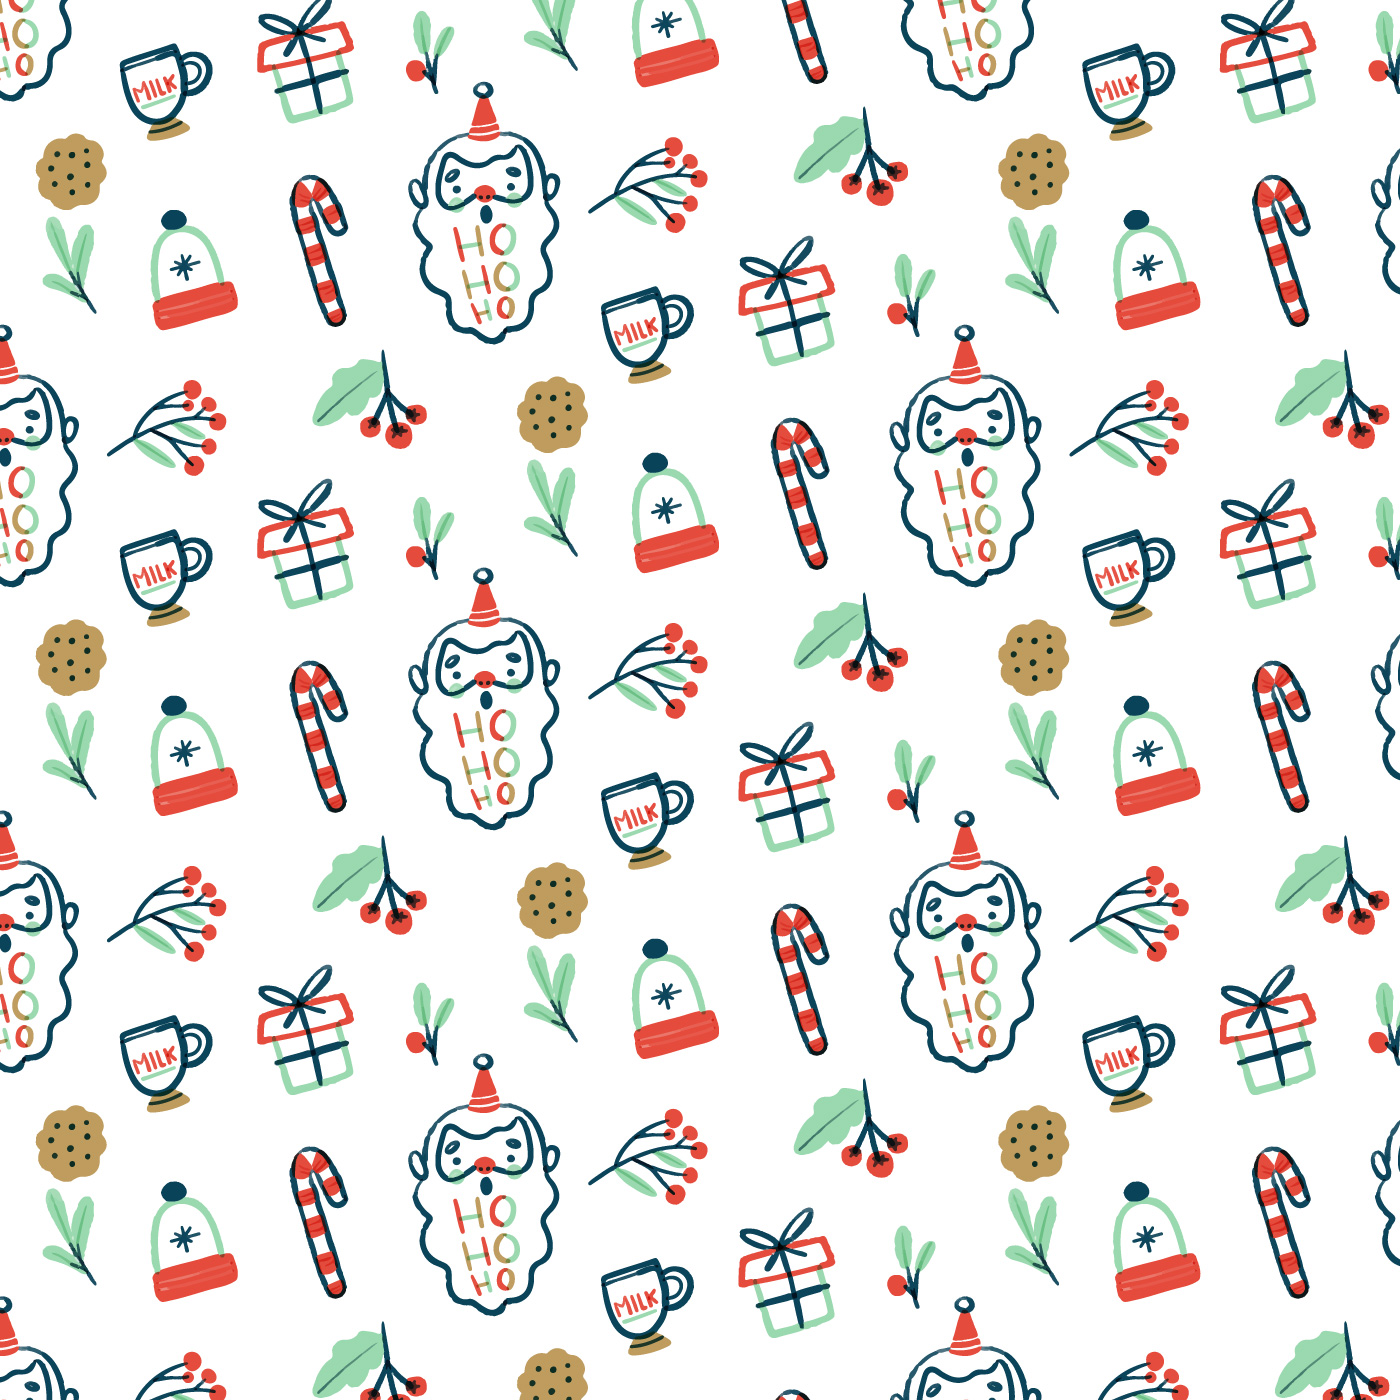 Candy Cane Pattern Free Vector Art - (26711 Free Downloads)